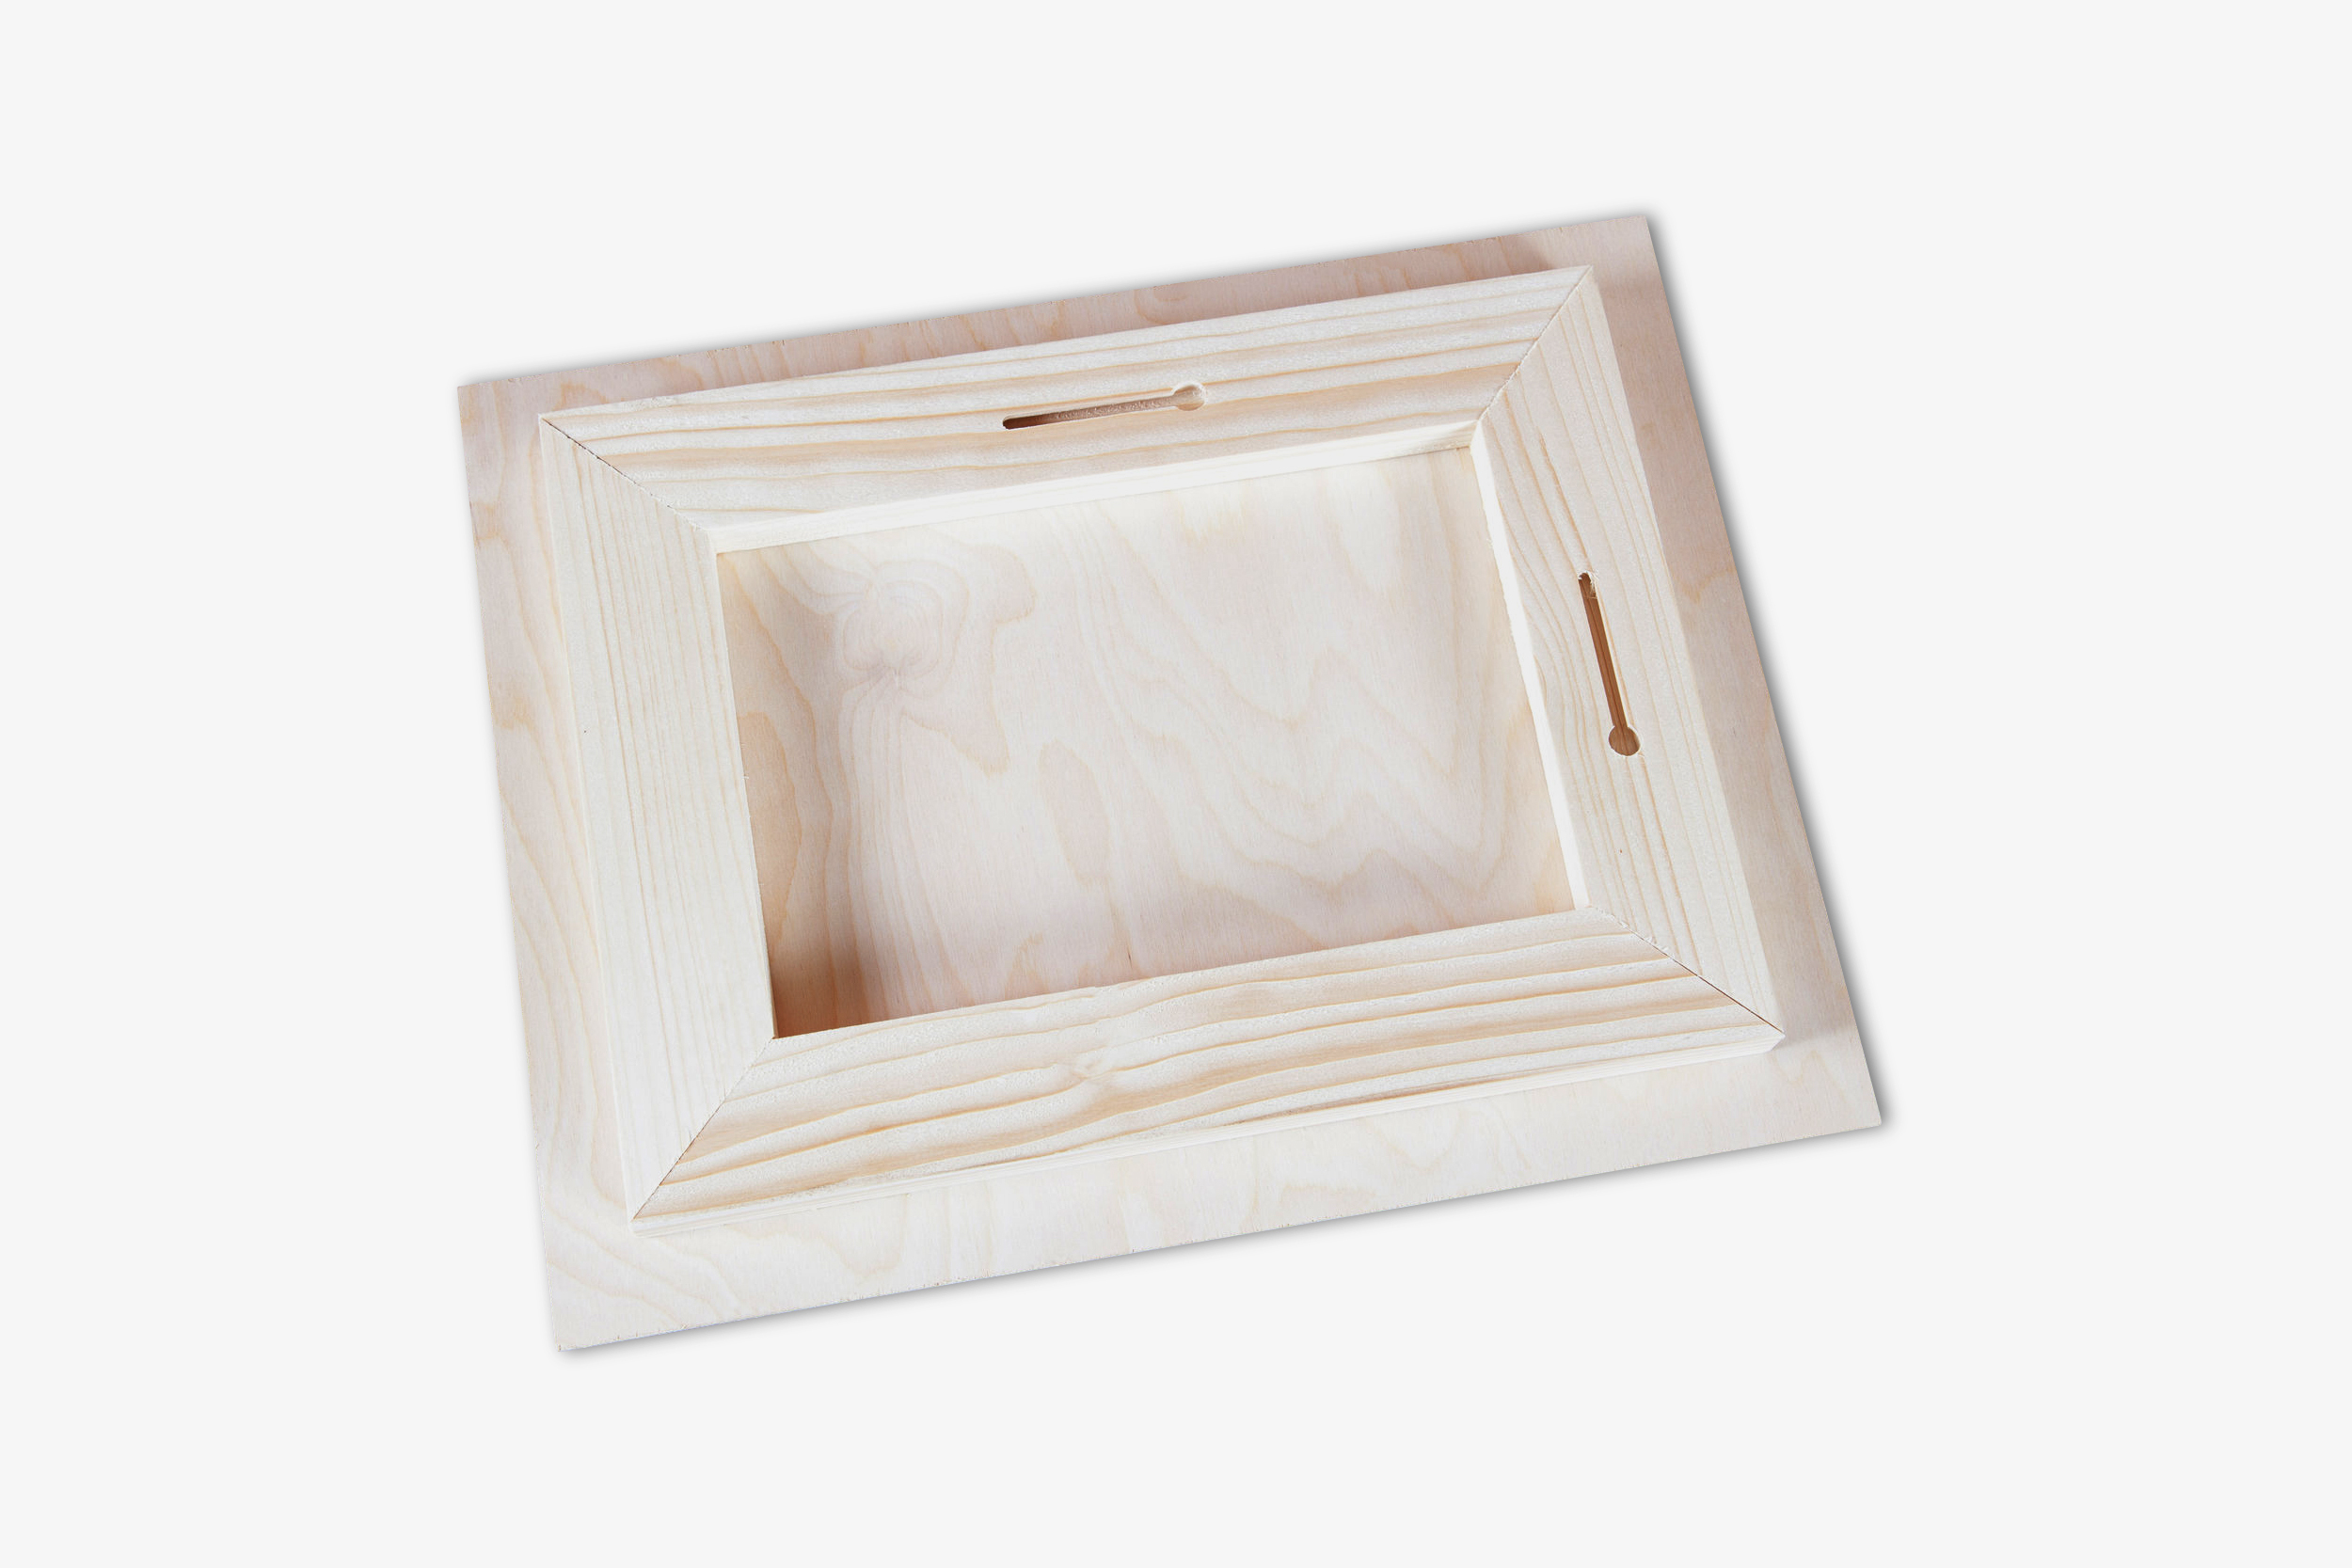 Direct to Wood Standout Photo Print Keyhole Display